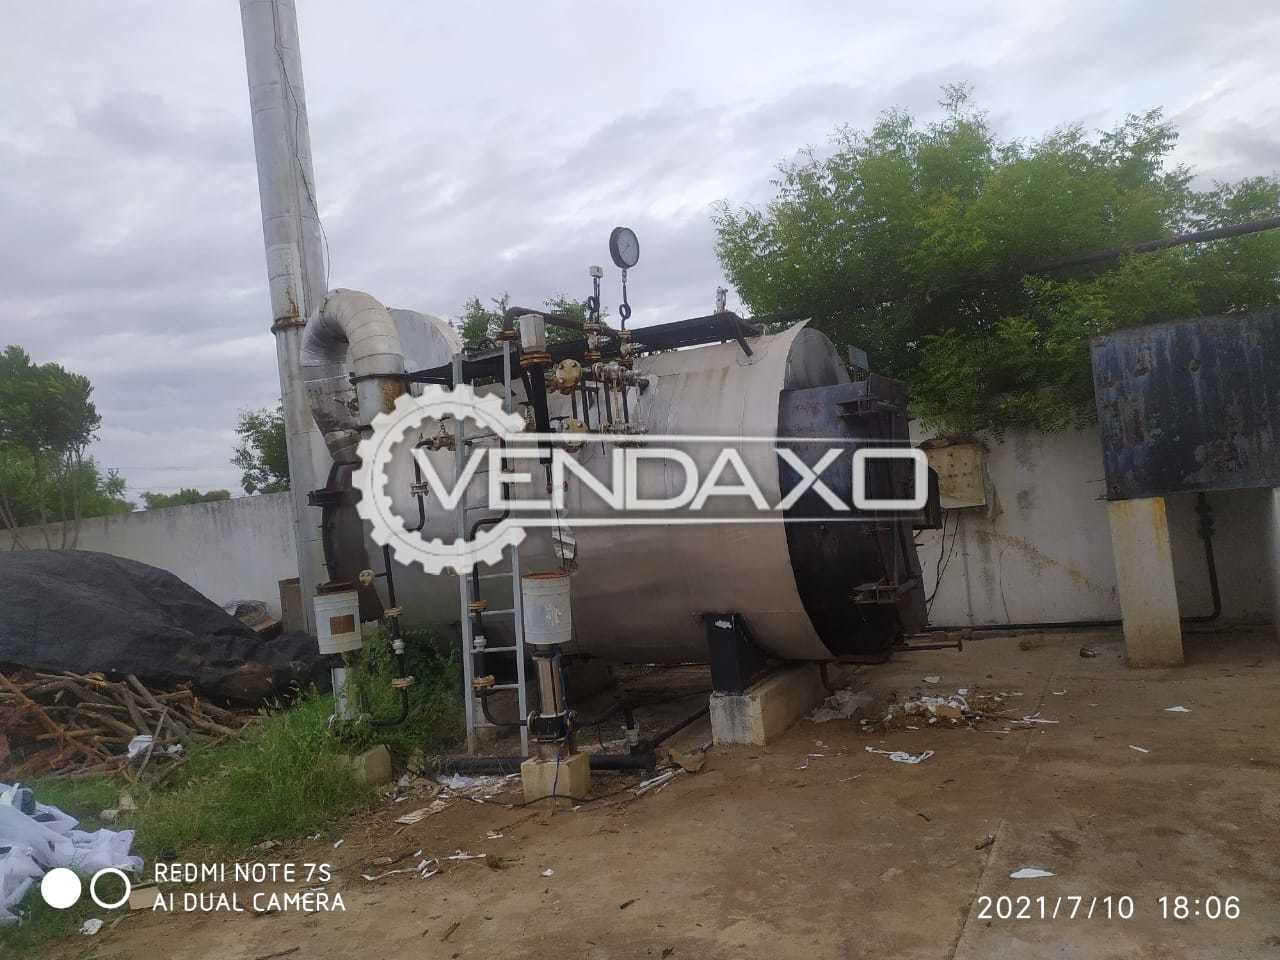 For Sale Used Wood Coal Fired Steam Boiler - 2 Ton